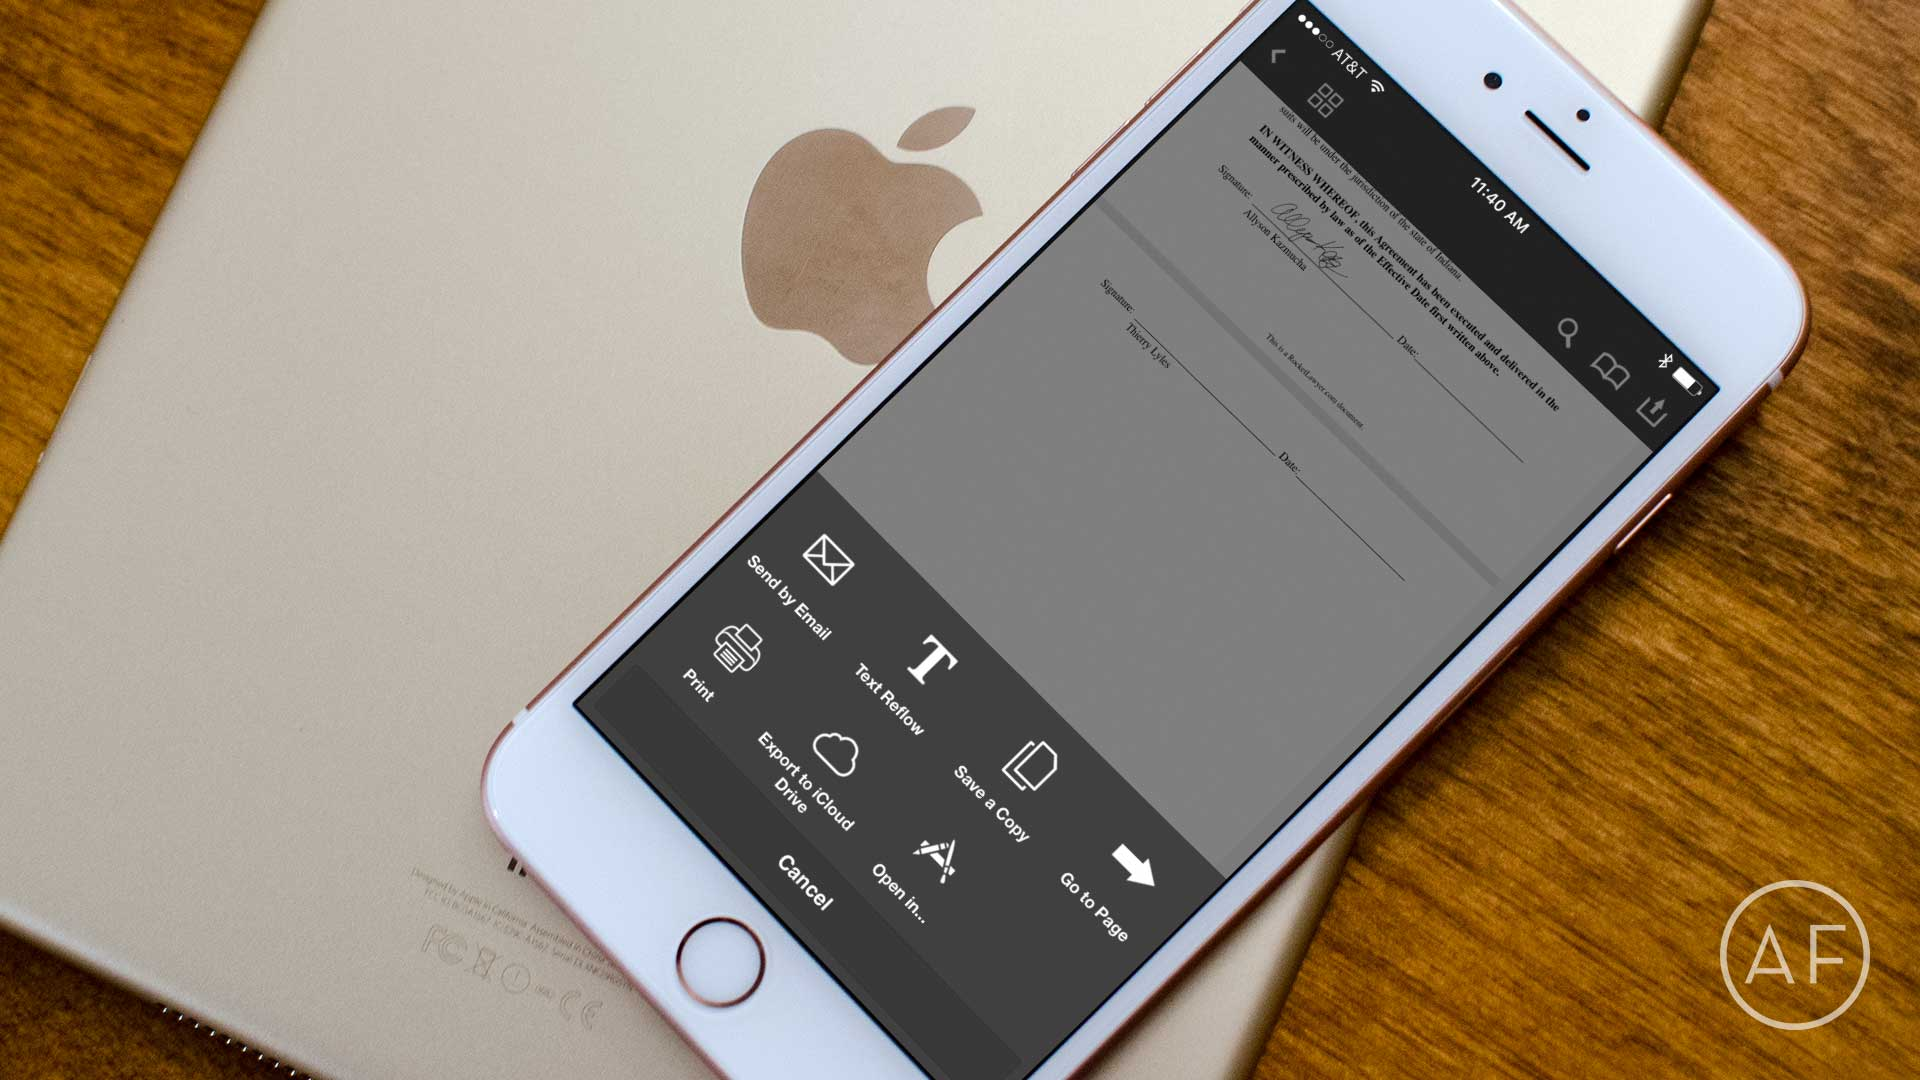 How to sign, scan and send PDFs on iPhone or iPad